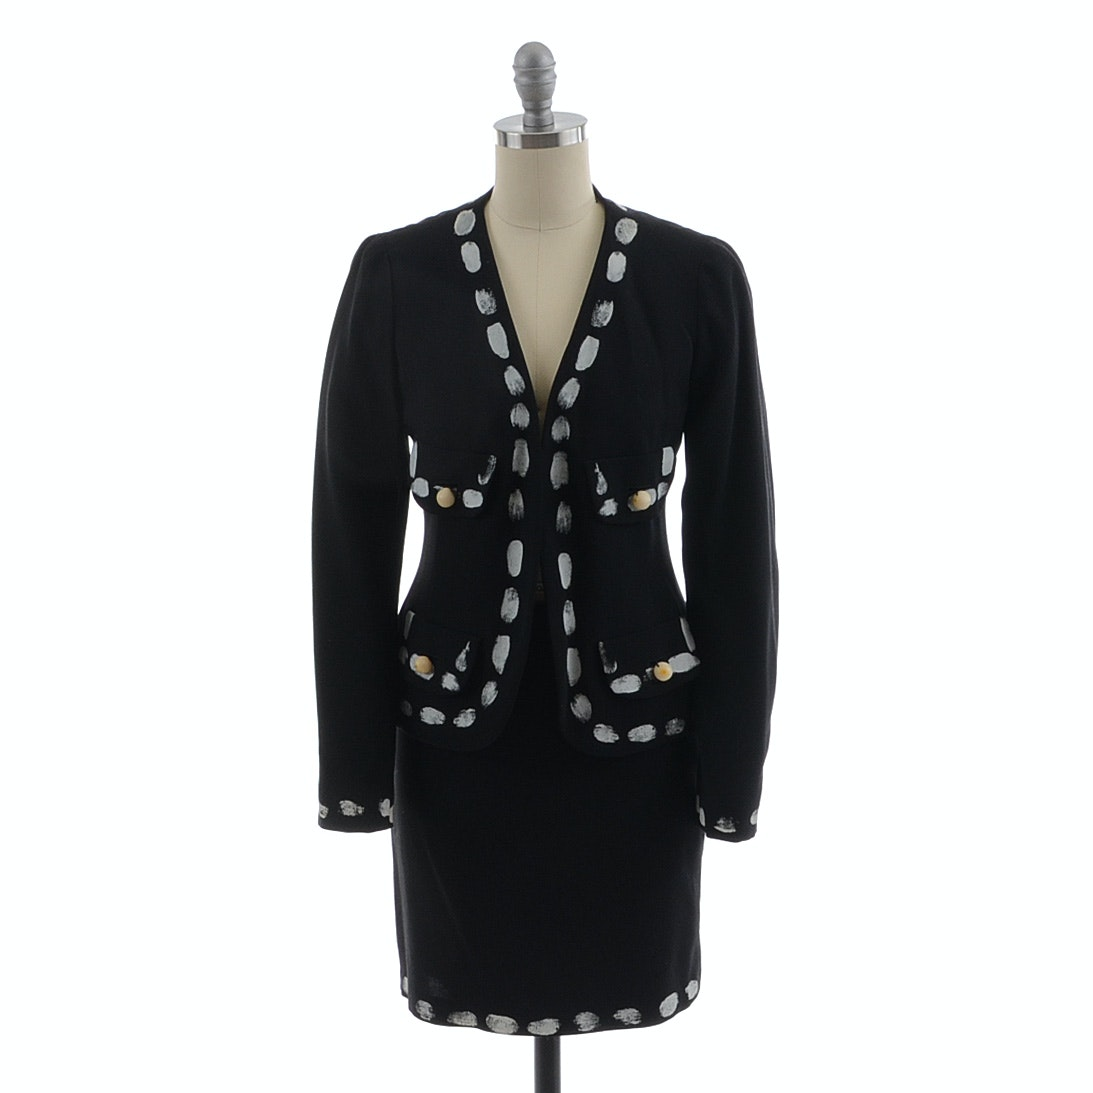 1980s Moschino Couture! Black and White Fingerprint Suit with Blazer and Skirt in a Virgin Wool and Silk Blend